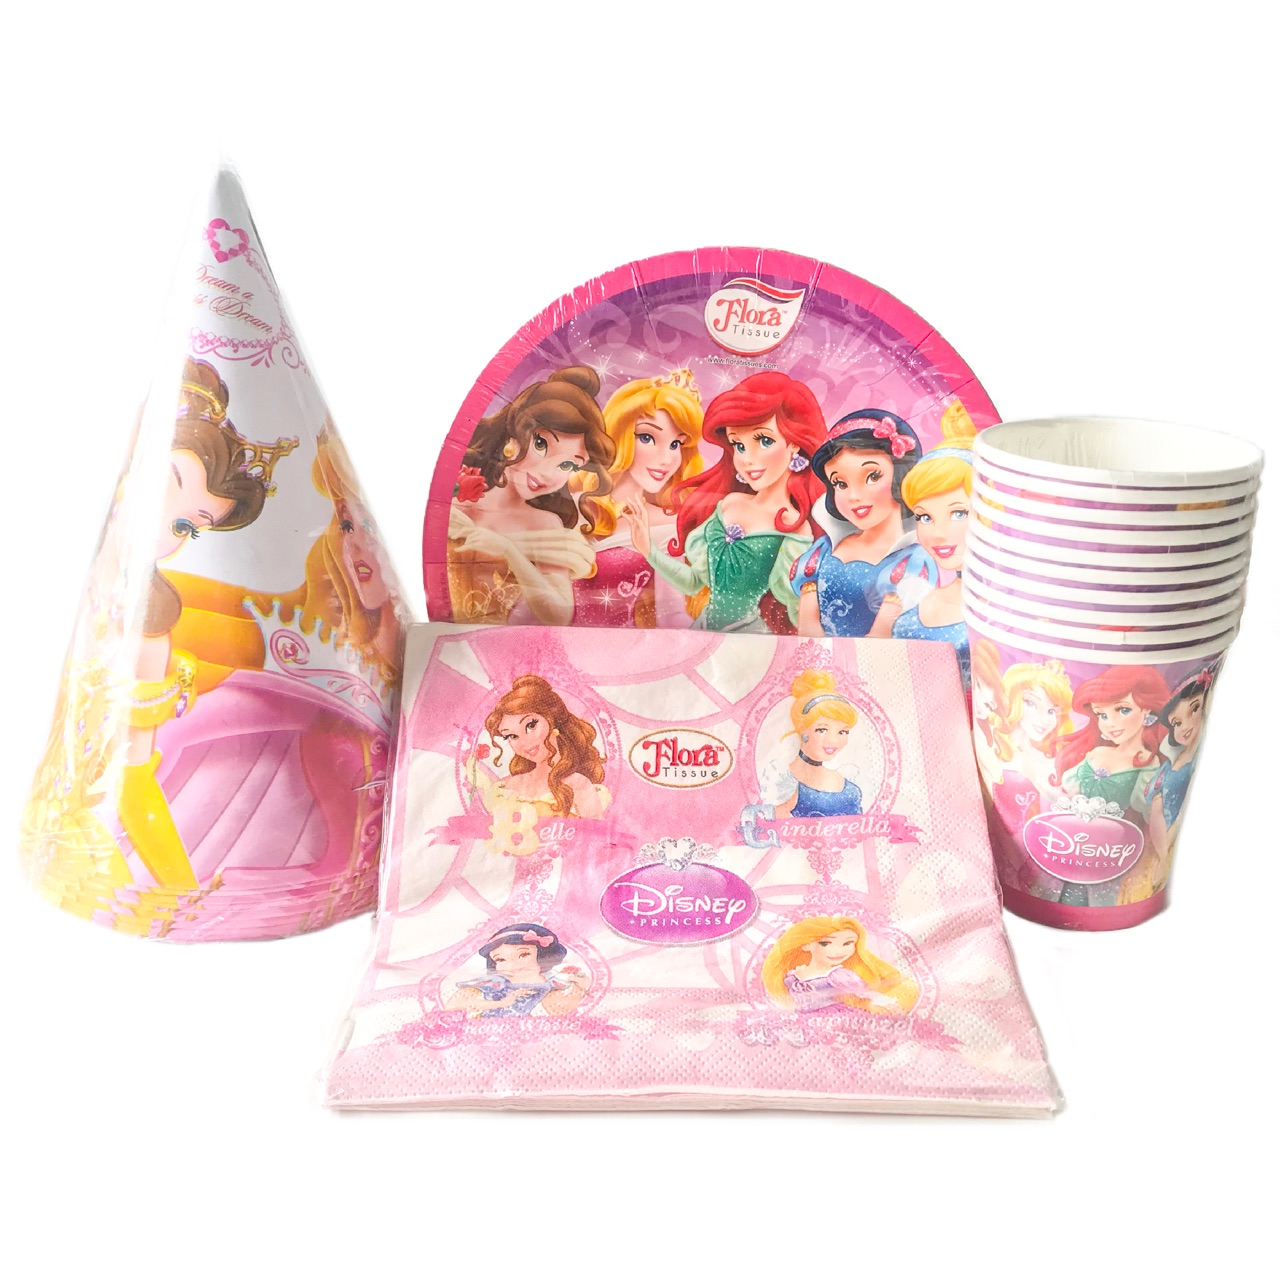 Birthday party items For girls